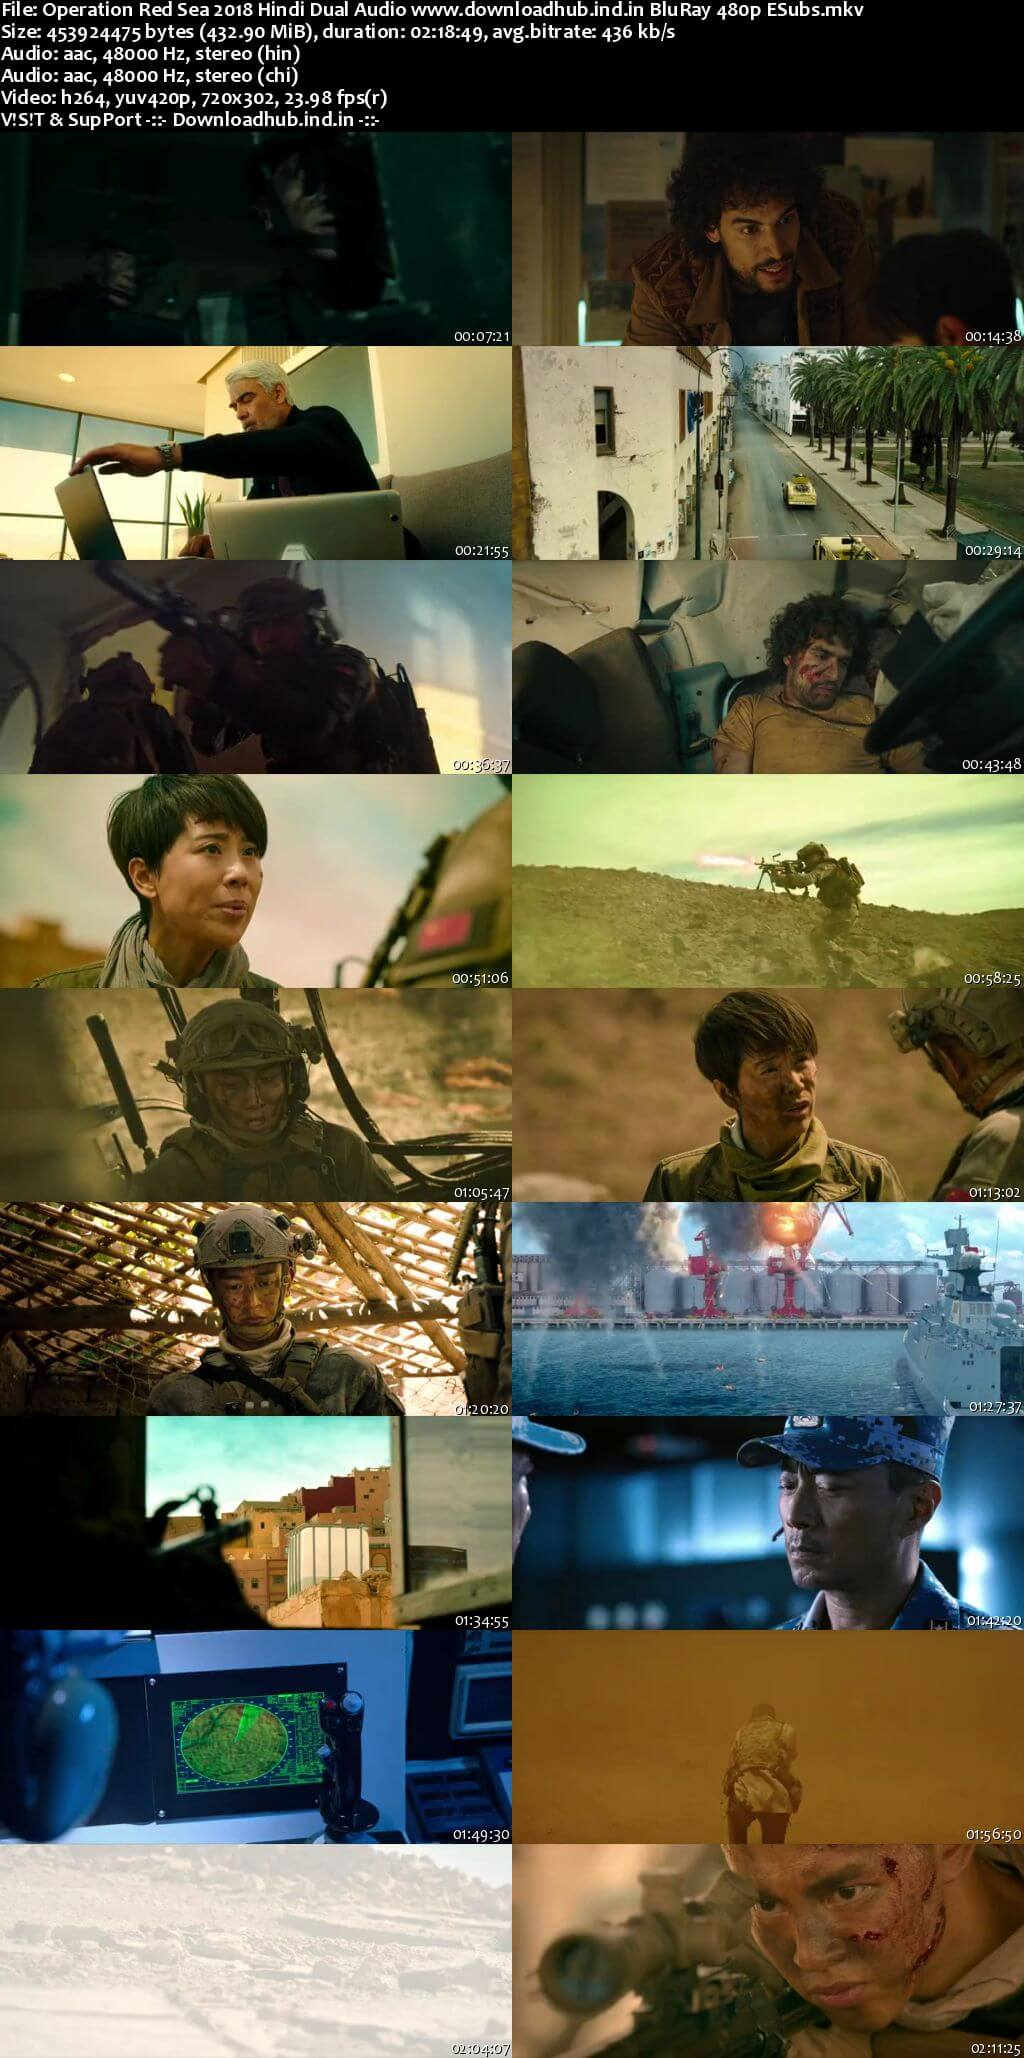 Operation Red Sea 2018 Hindi Dual Audio 400MB BluRay 480p ESubs